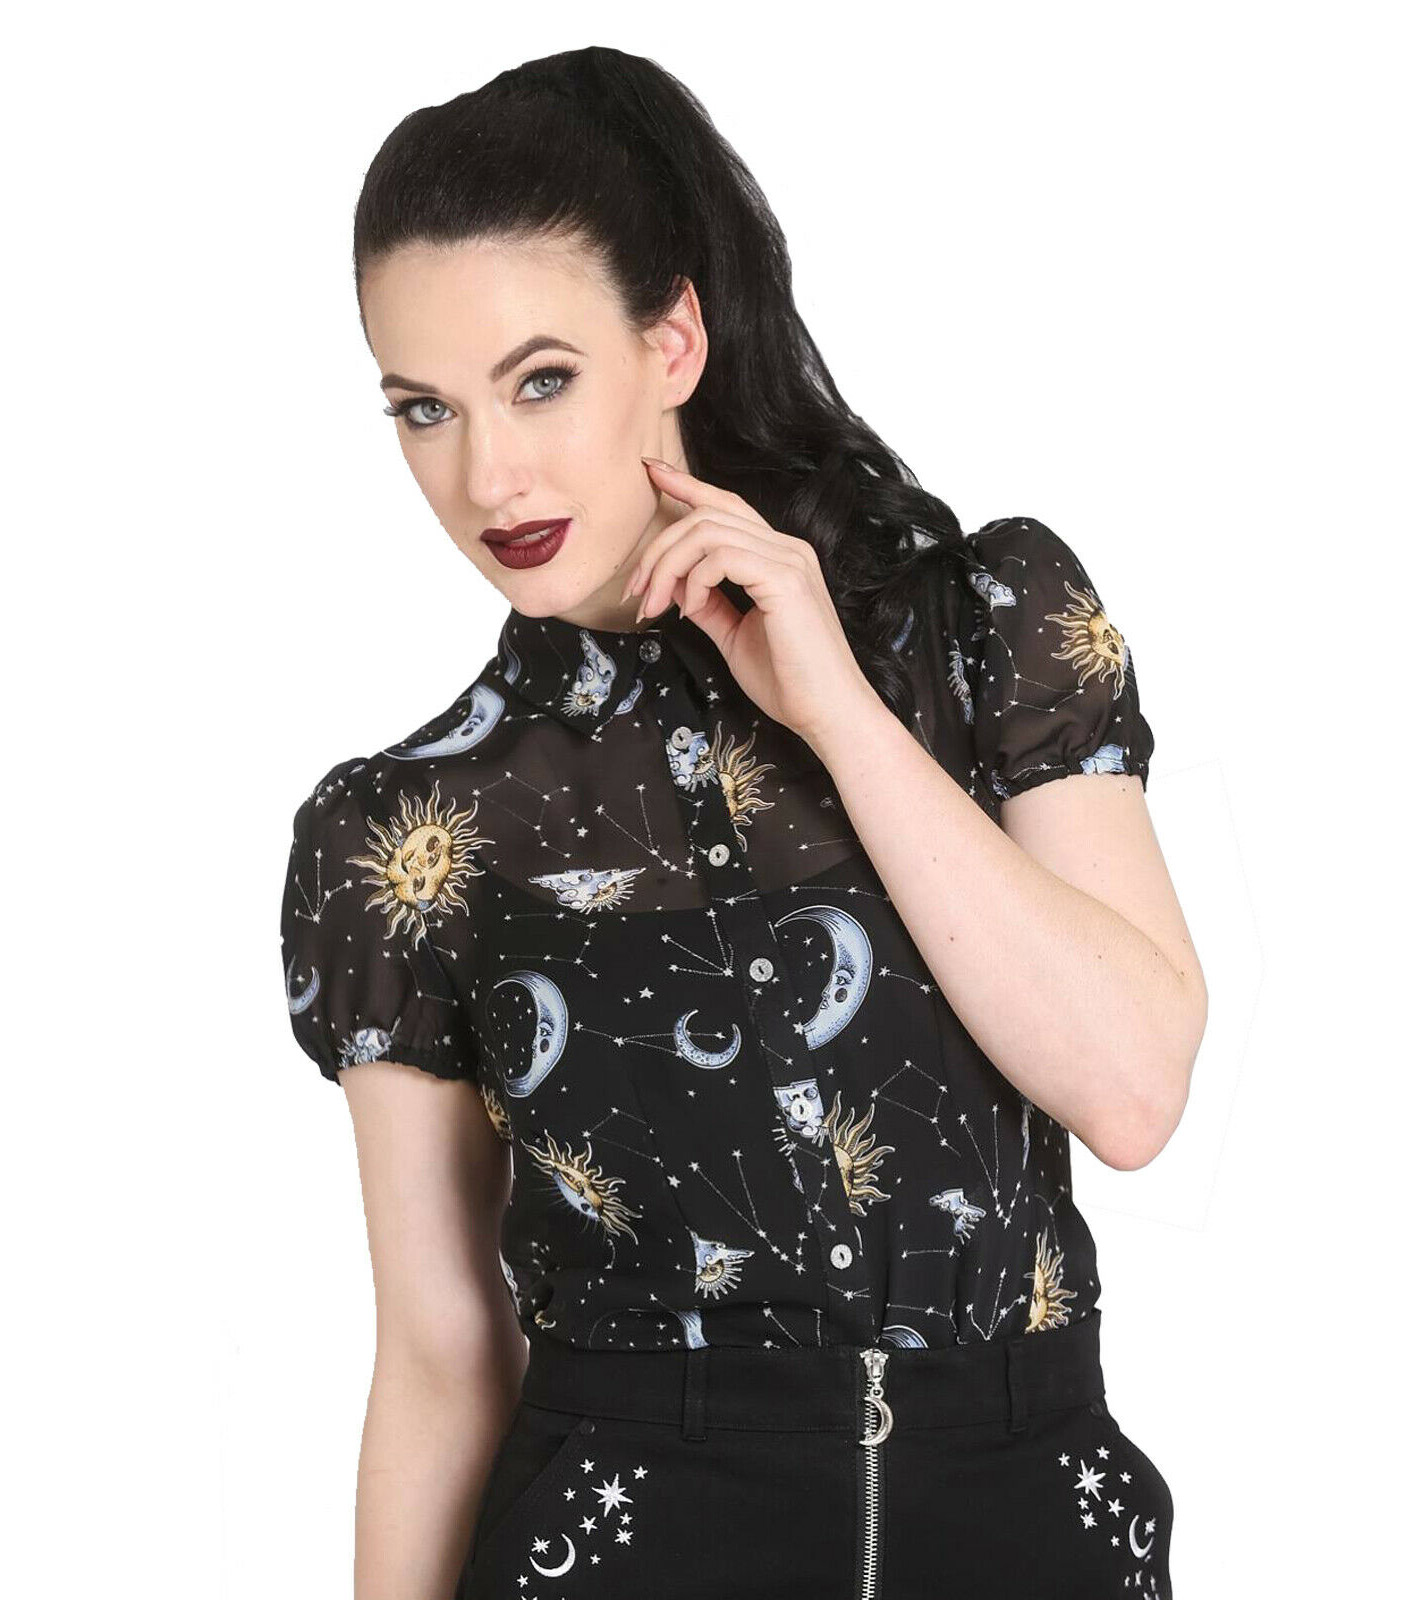 Hell-Bunny-50s-Shirt-Top-Gothic-Black-Sun-Moon-Stars-SOLARIS-Blouse-All-Sizes thumbnail 15